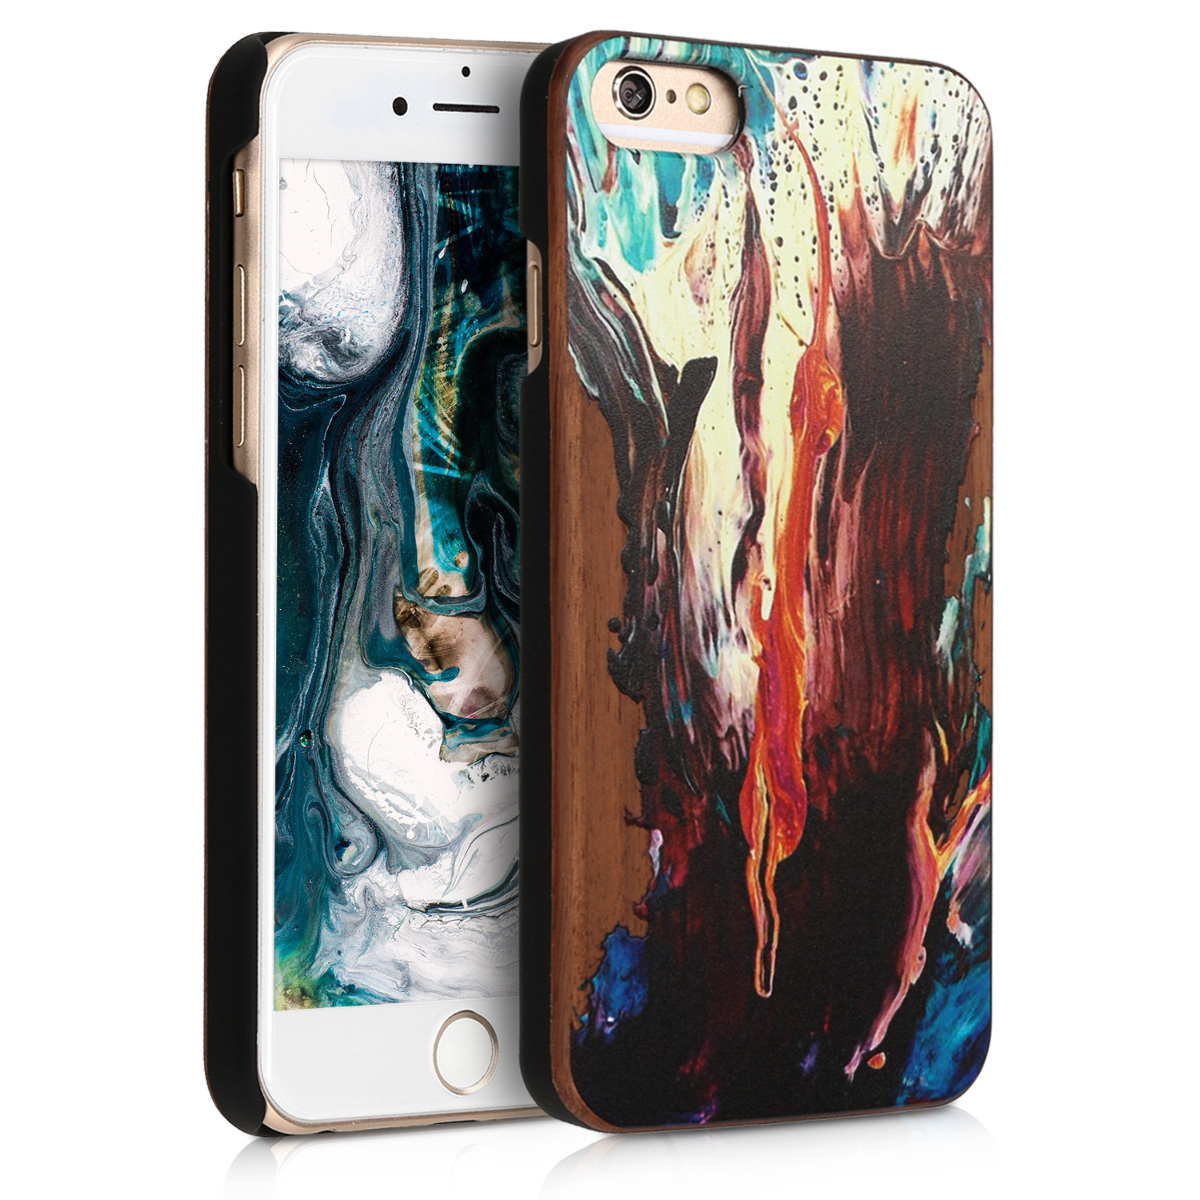 KW Σκληρή Ξύλινη Θήκη Apple iPhone 6 / 6S - Watercolor Waves - Orange / Turquoise / Brown (46078.04)